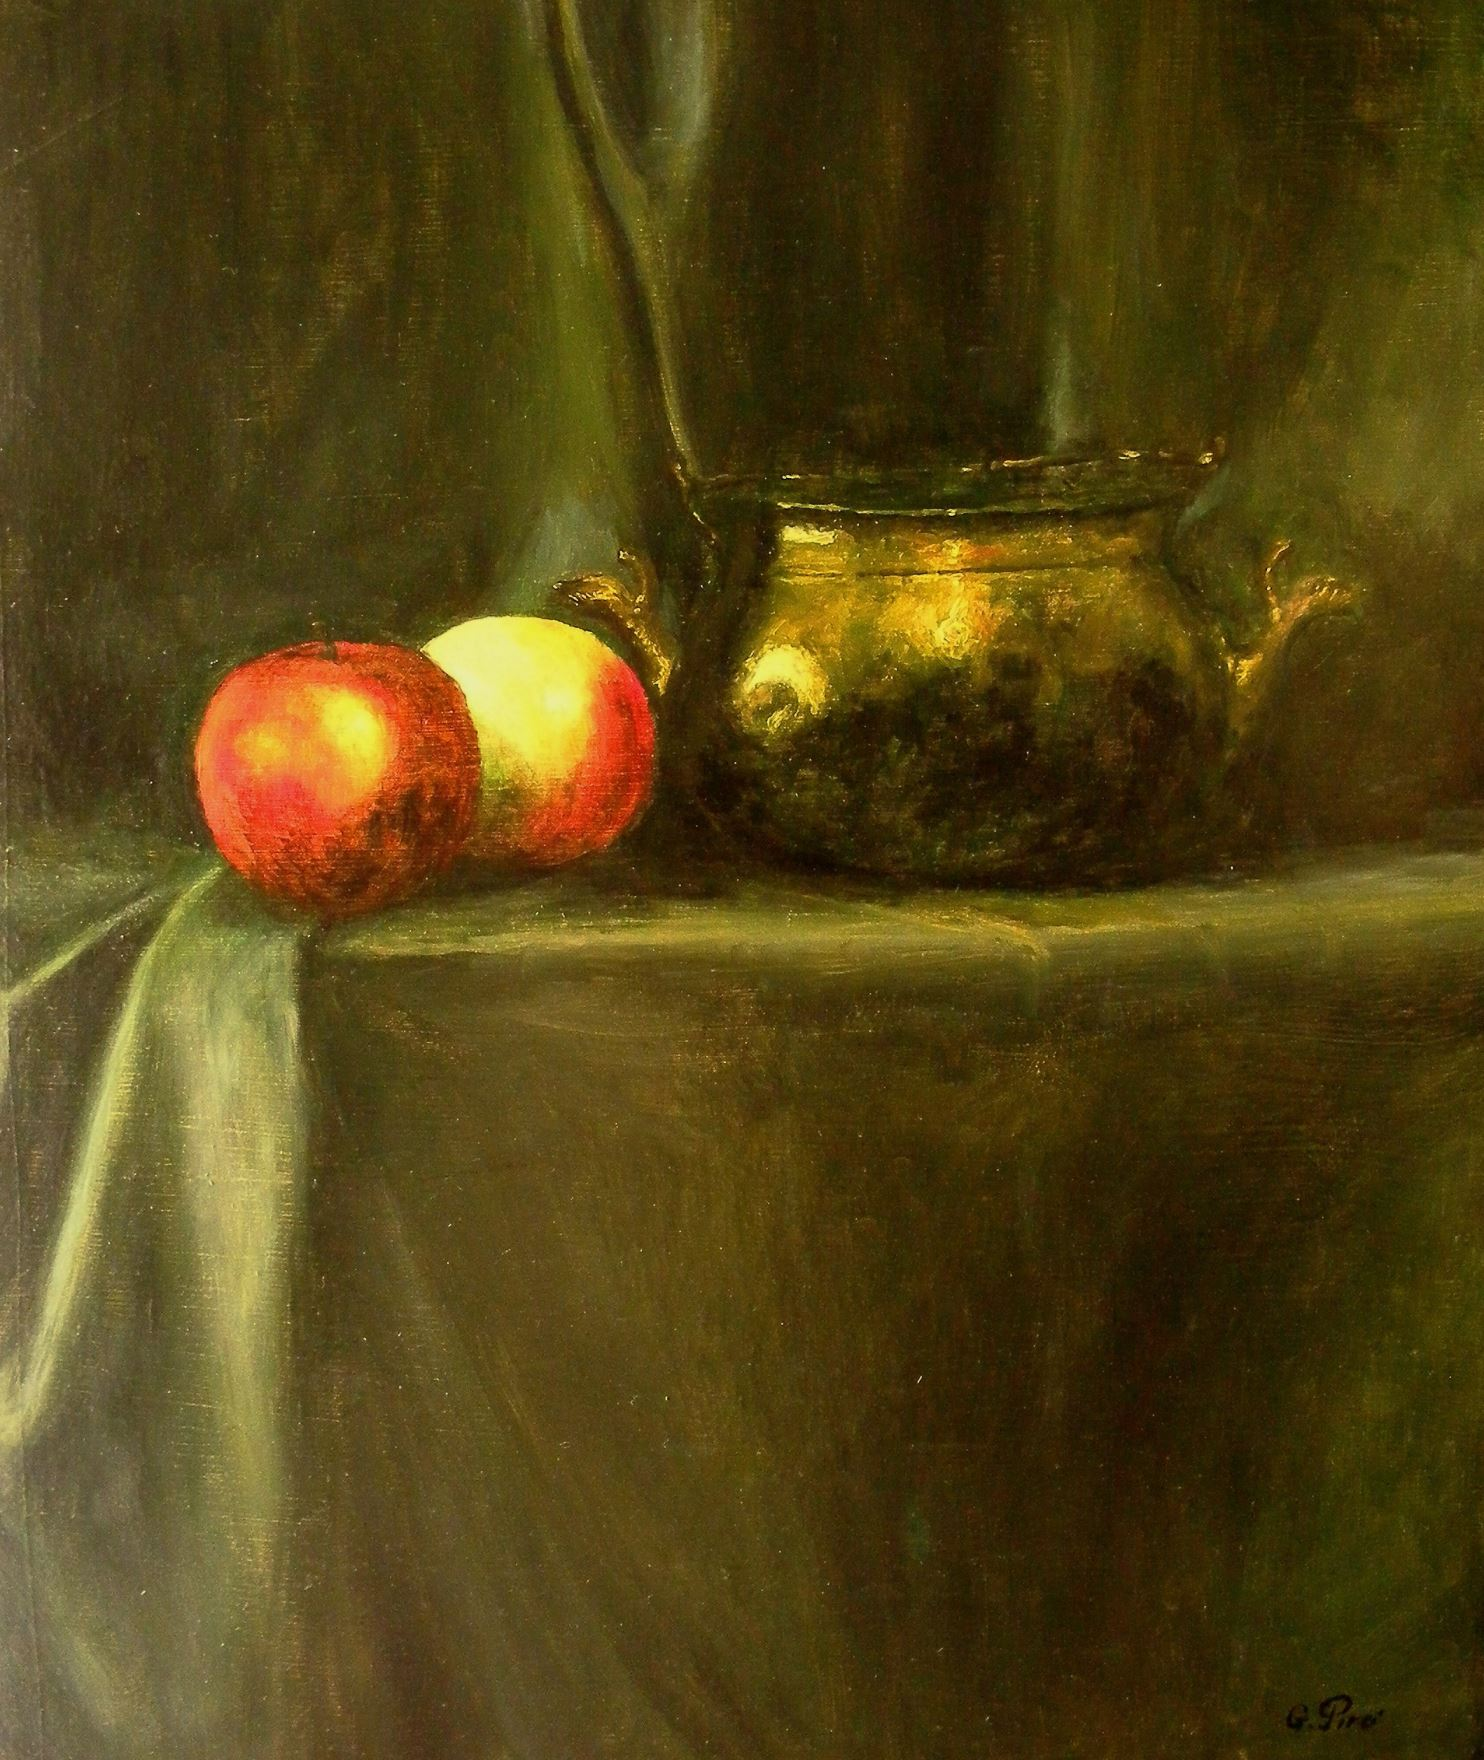 Oil Painting, Apples and Brass, Gregory Pyra Piro